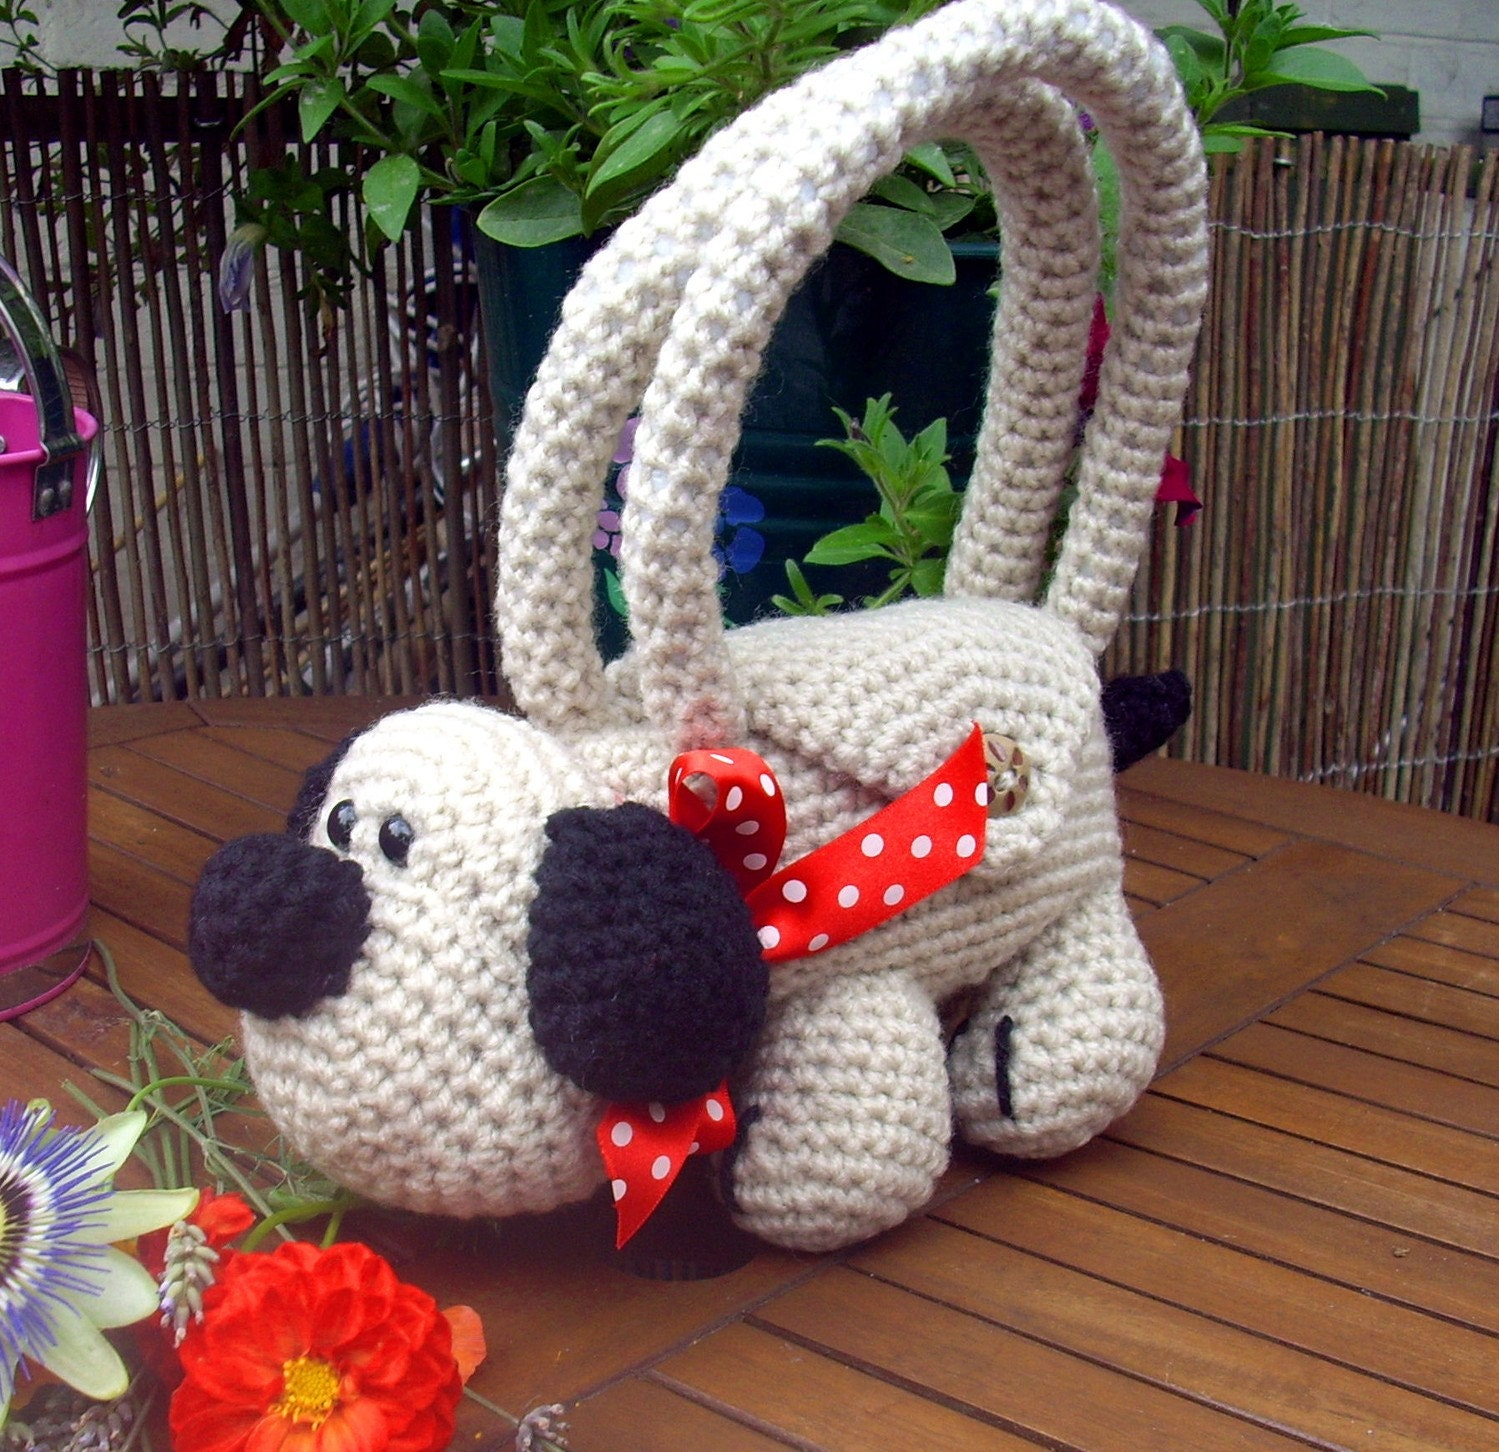 Crochet Animal Bag Free Pattern : Crochet Animal Bag Roger the Dog SALE ITEM Childrens by ...